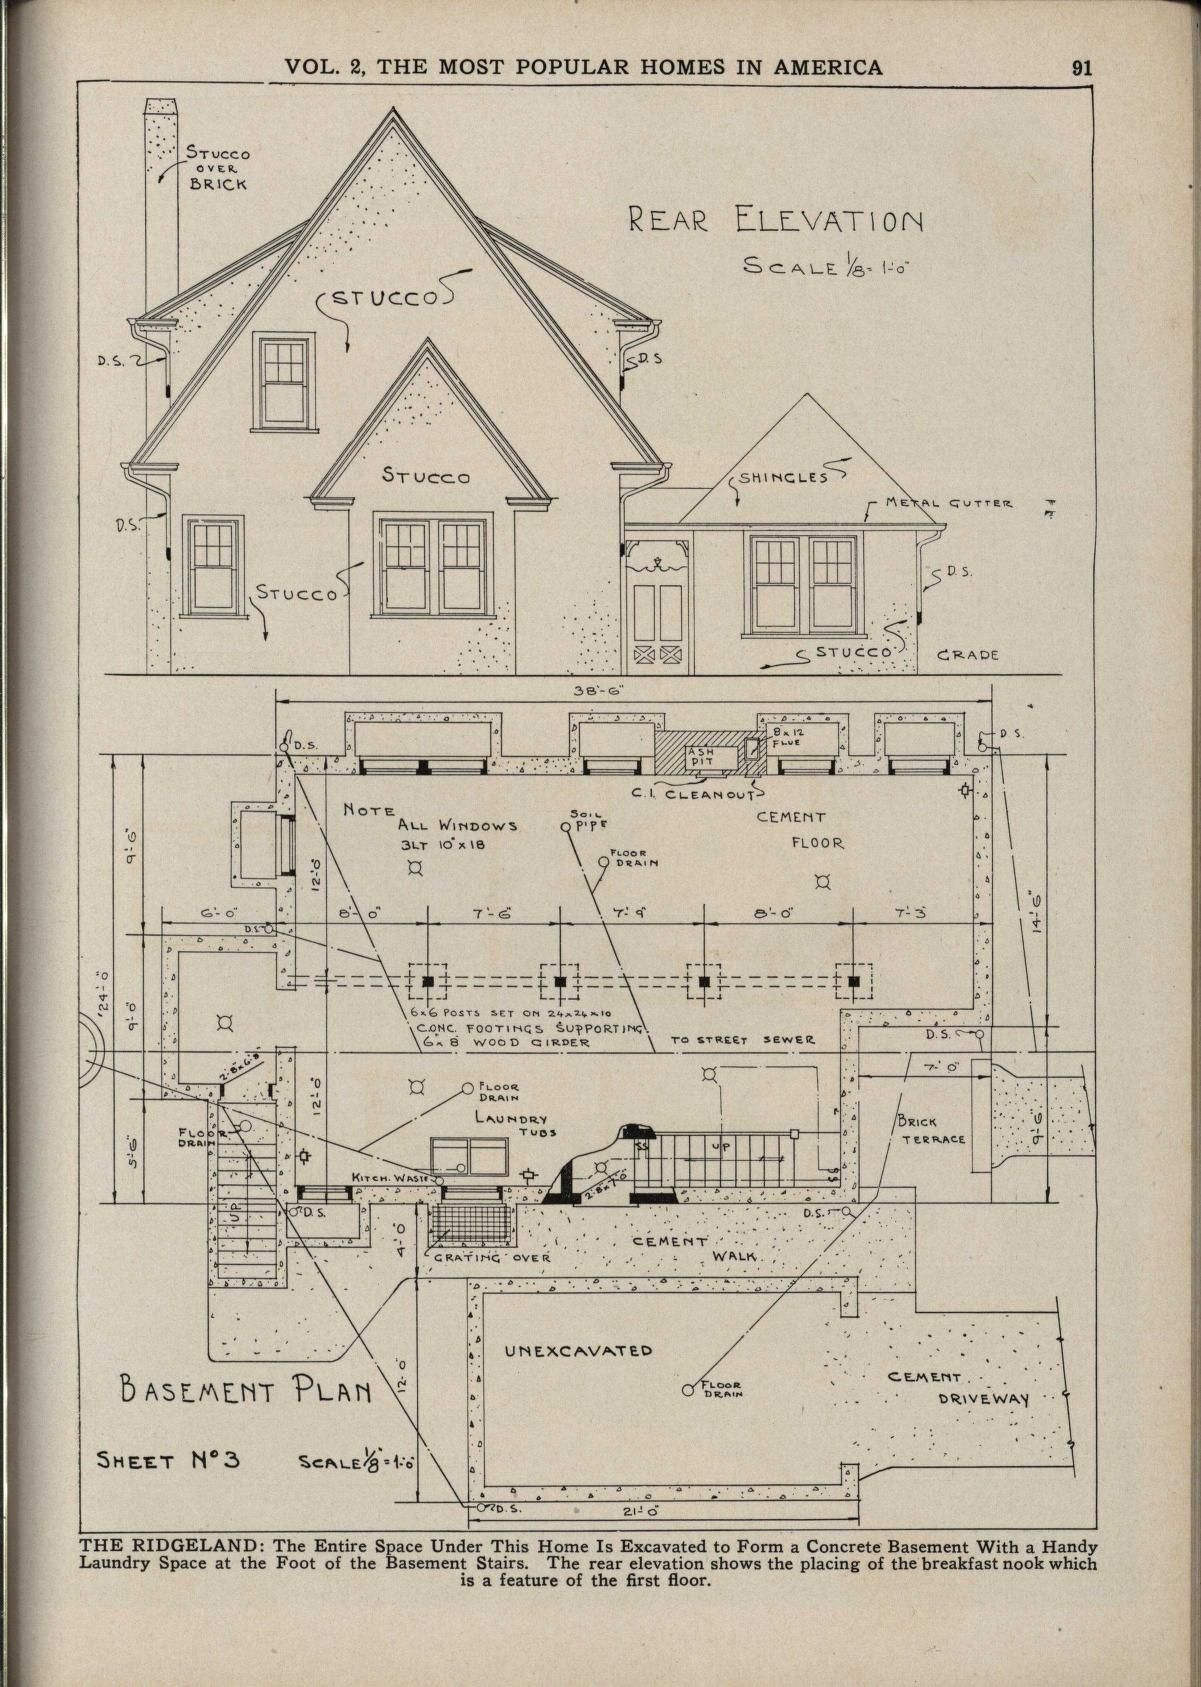 Pin By Hey Nonienonie On House Plans In 2020 How To Plan Publishing Company Internet Archive